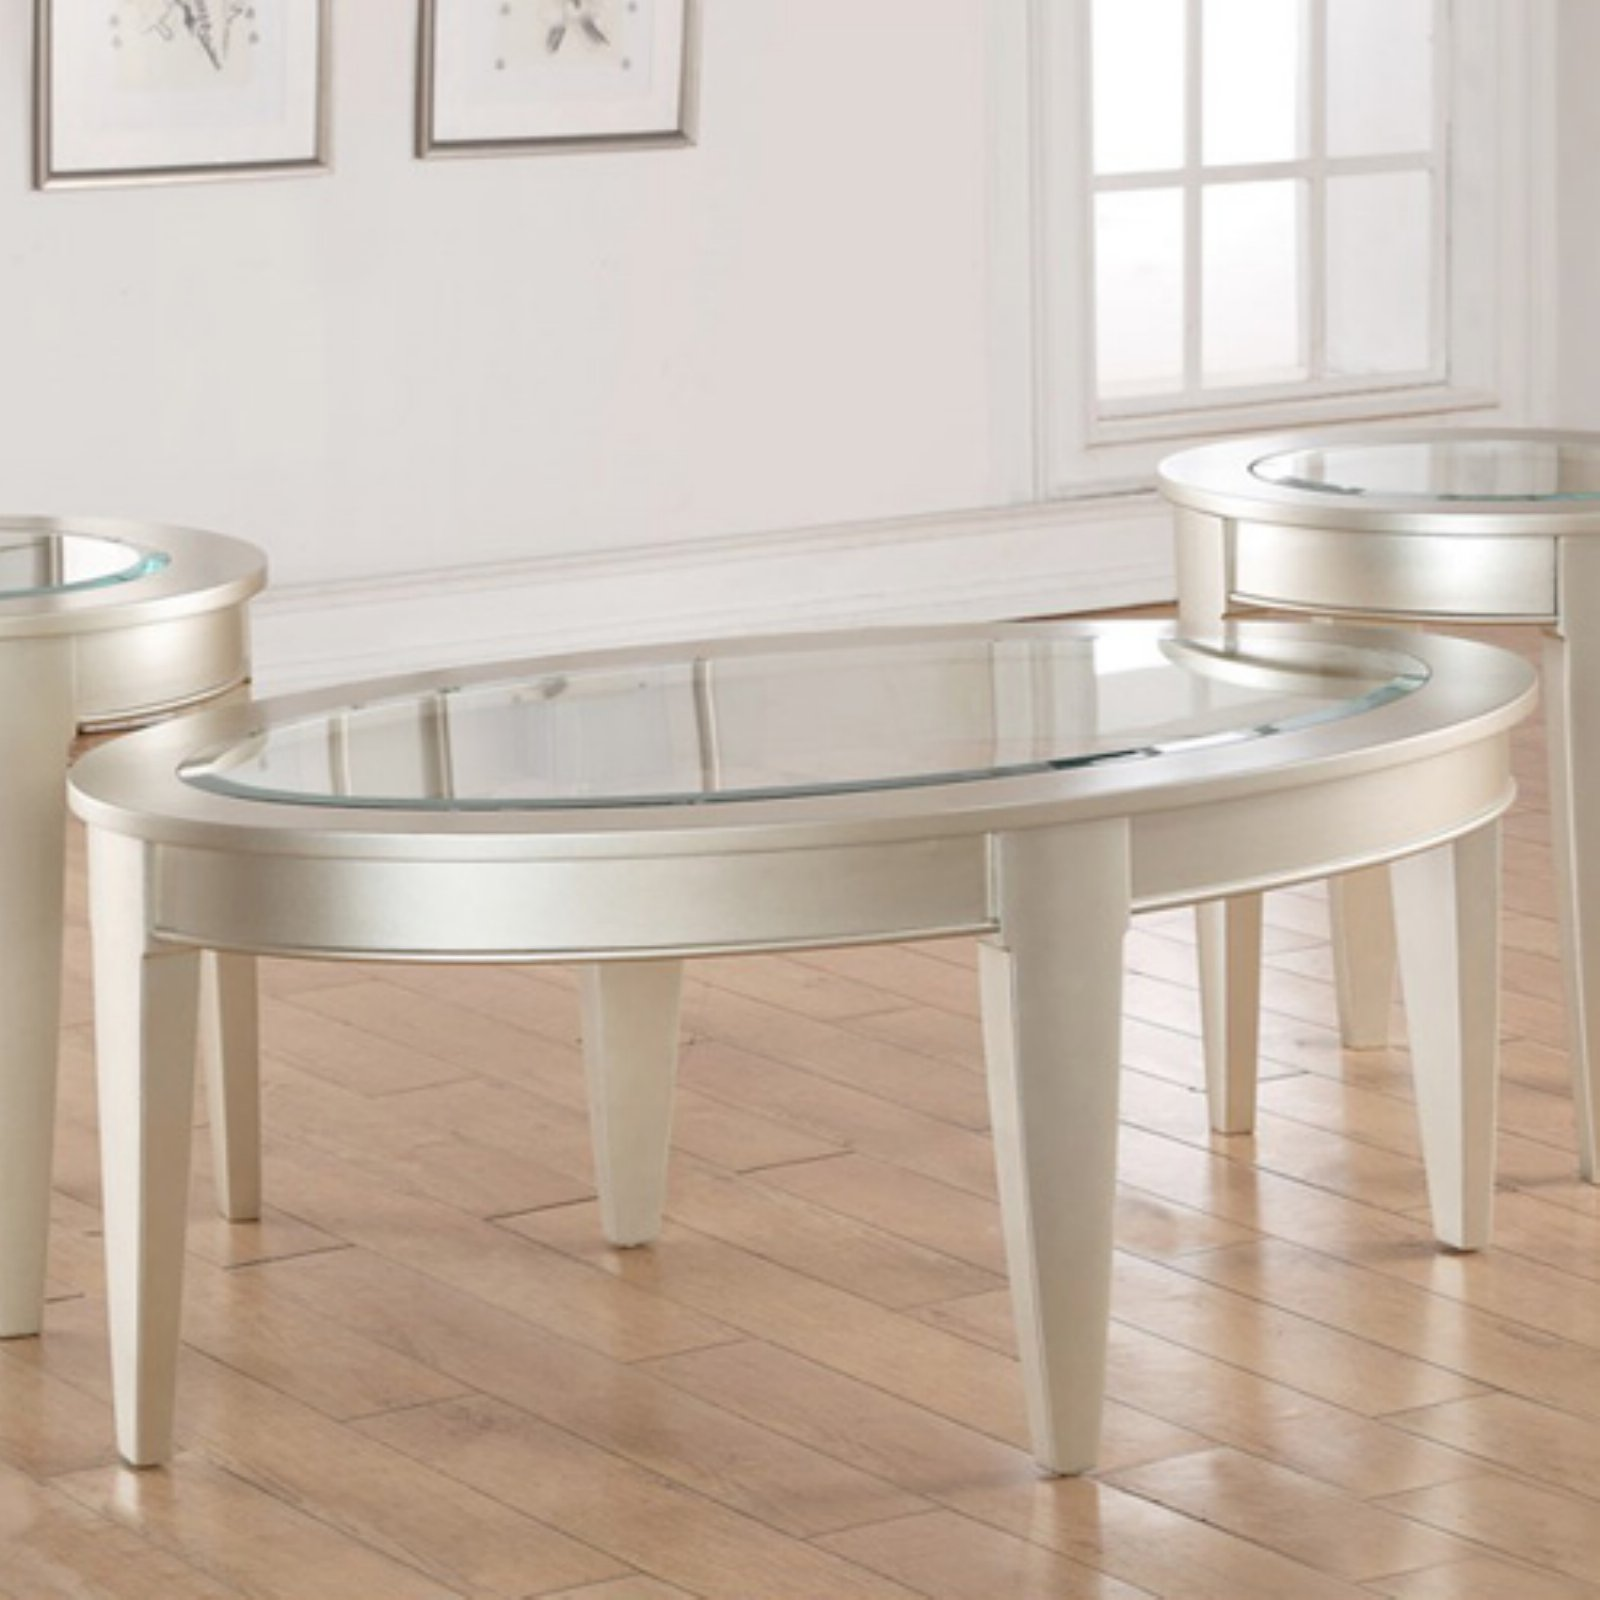 United Furniture 47.75 in. Oval Cocktail Table Platinum by United Furniture Industries